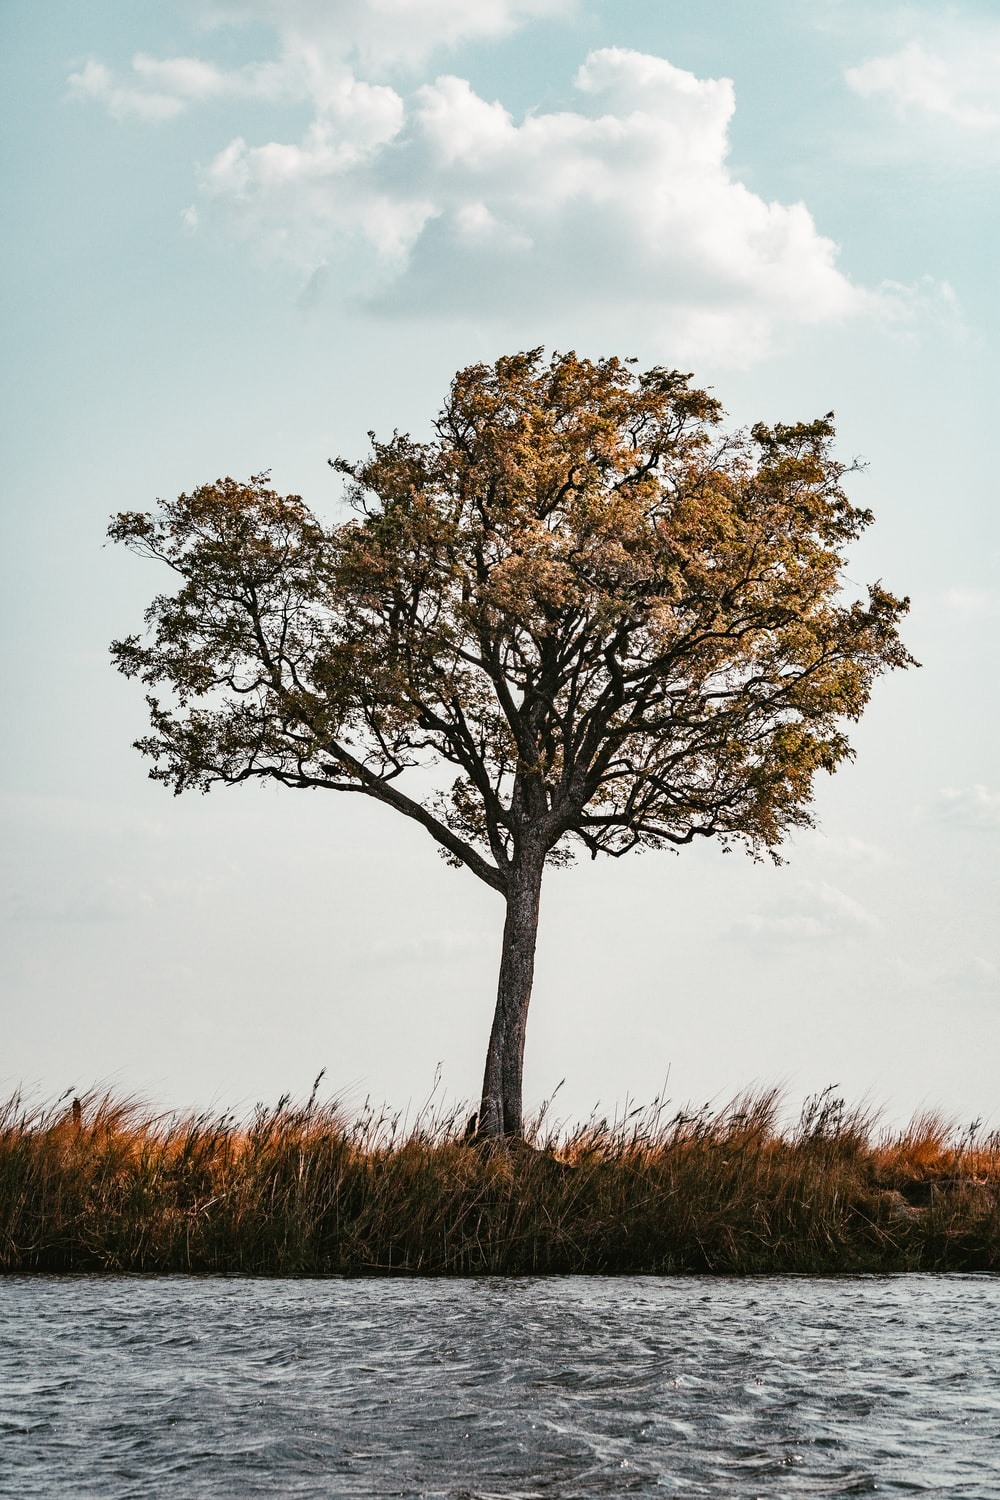 brown tree on brown grass field during daytime